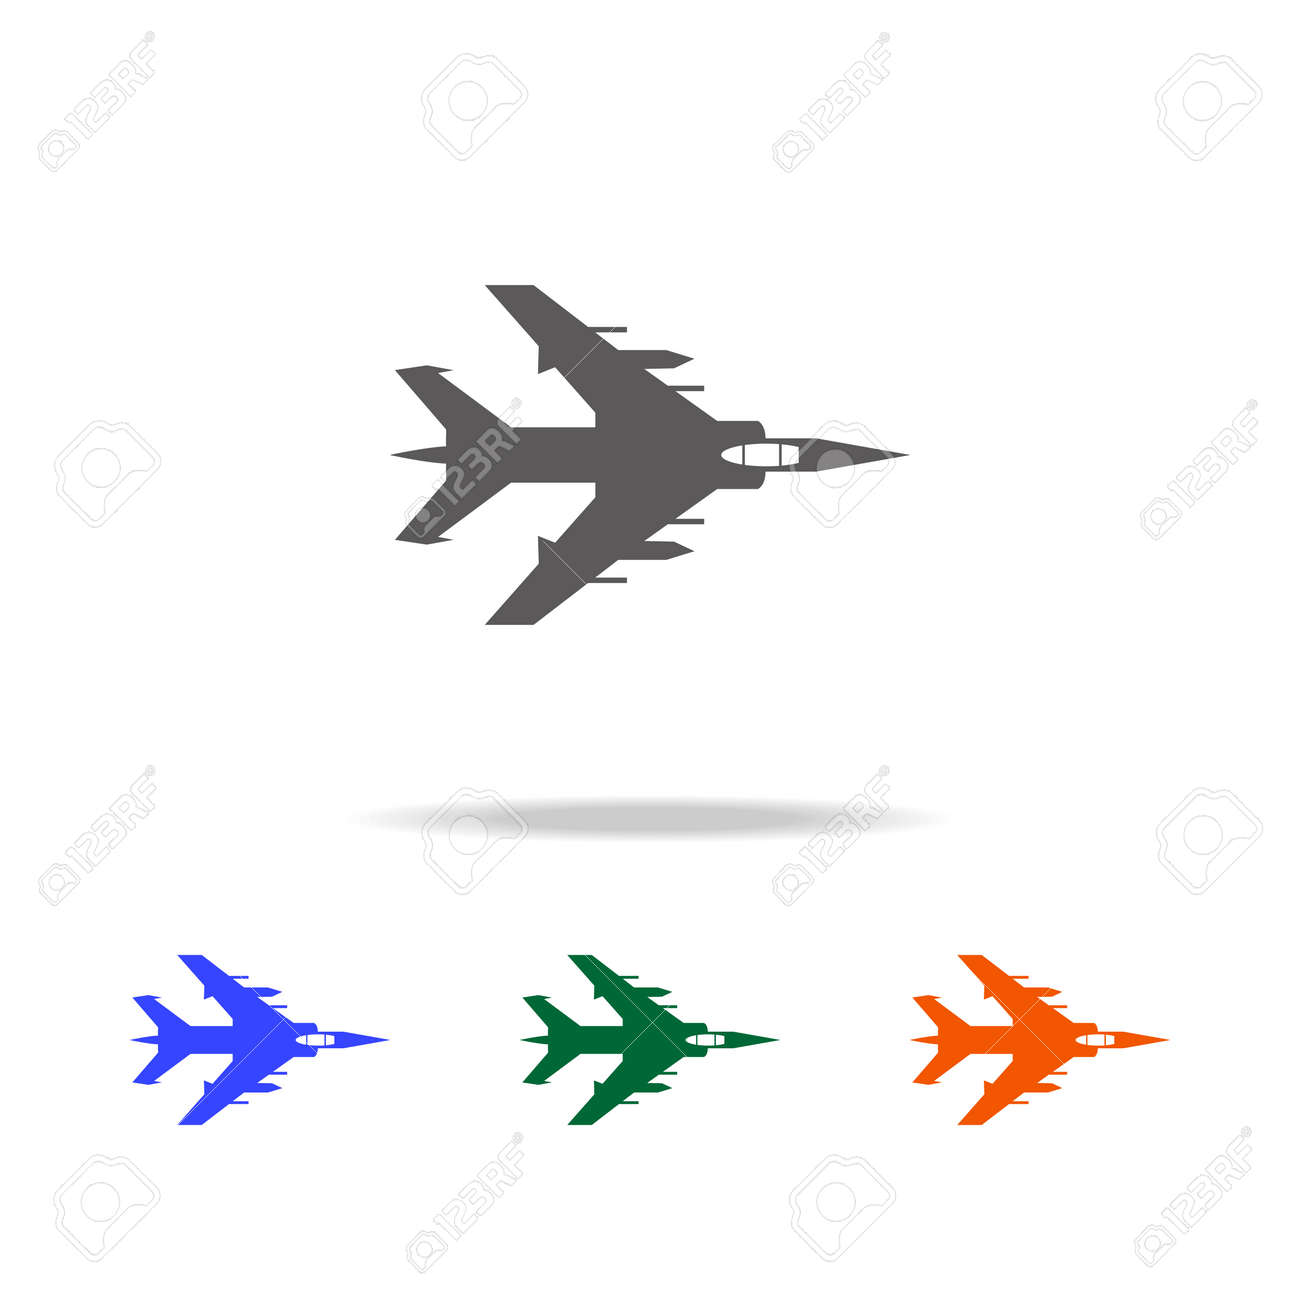 Bombardment plane icon  Elements of military aircraft in multi